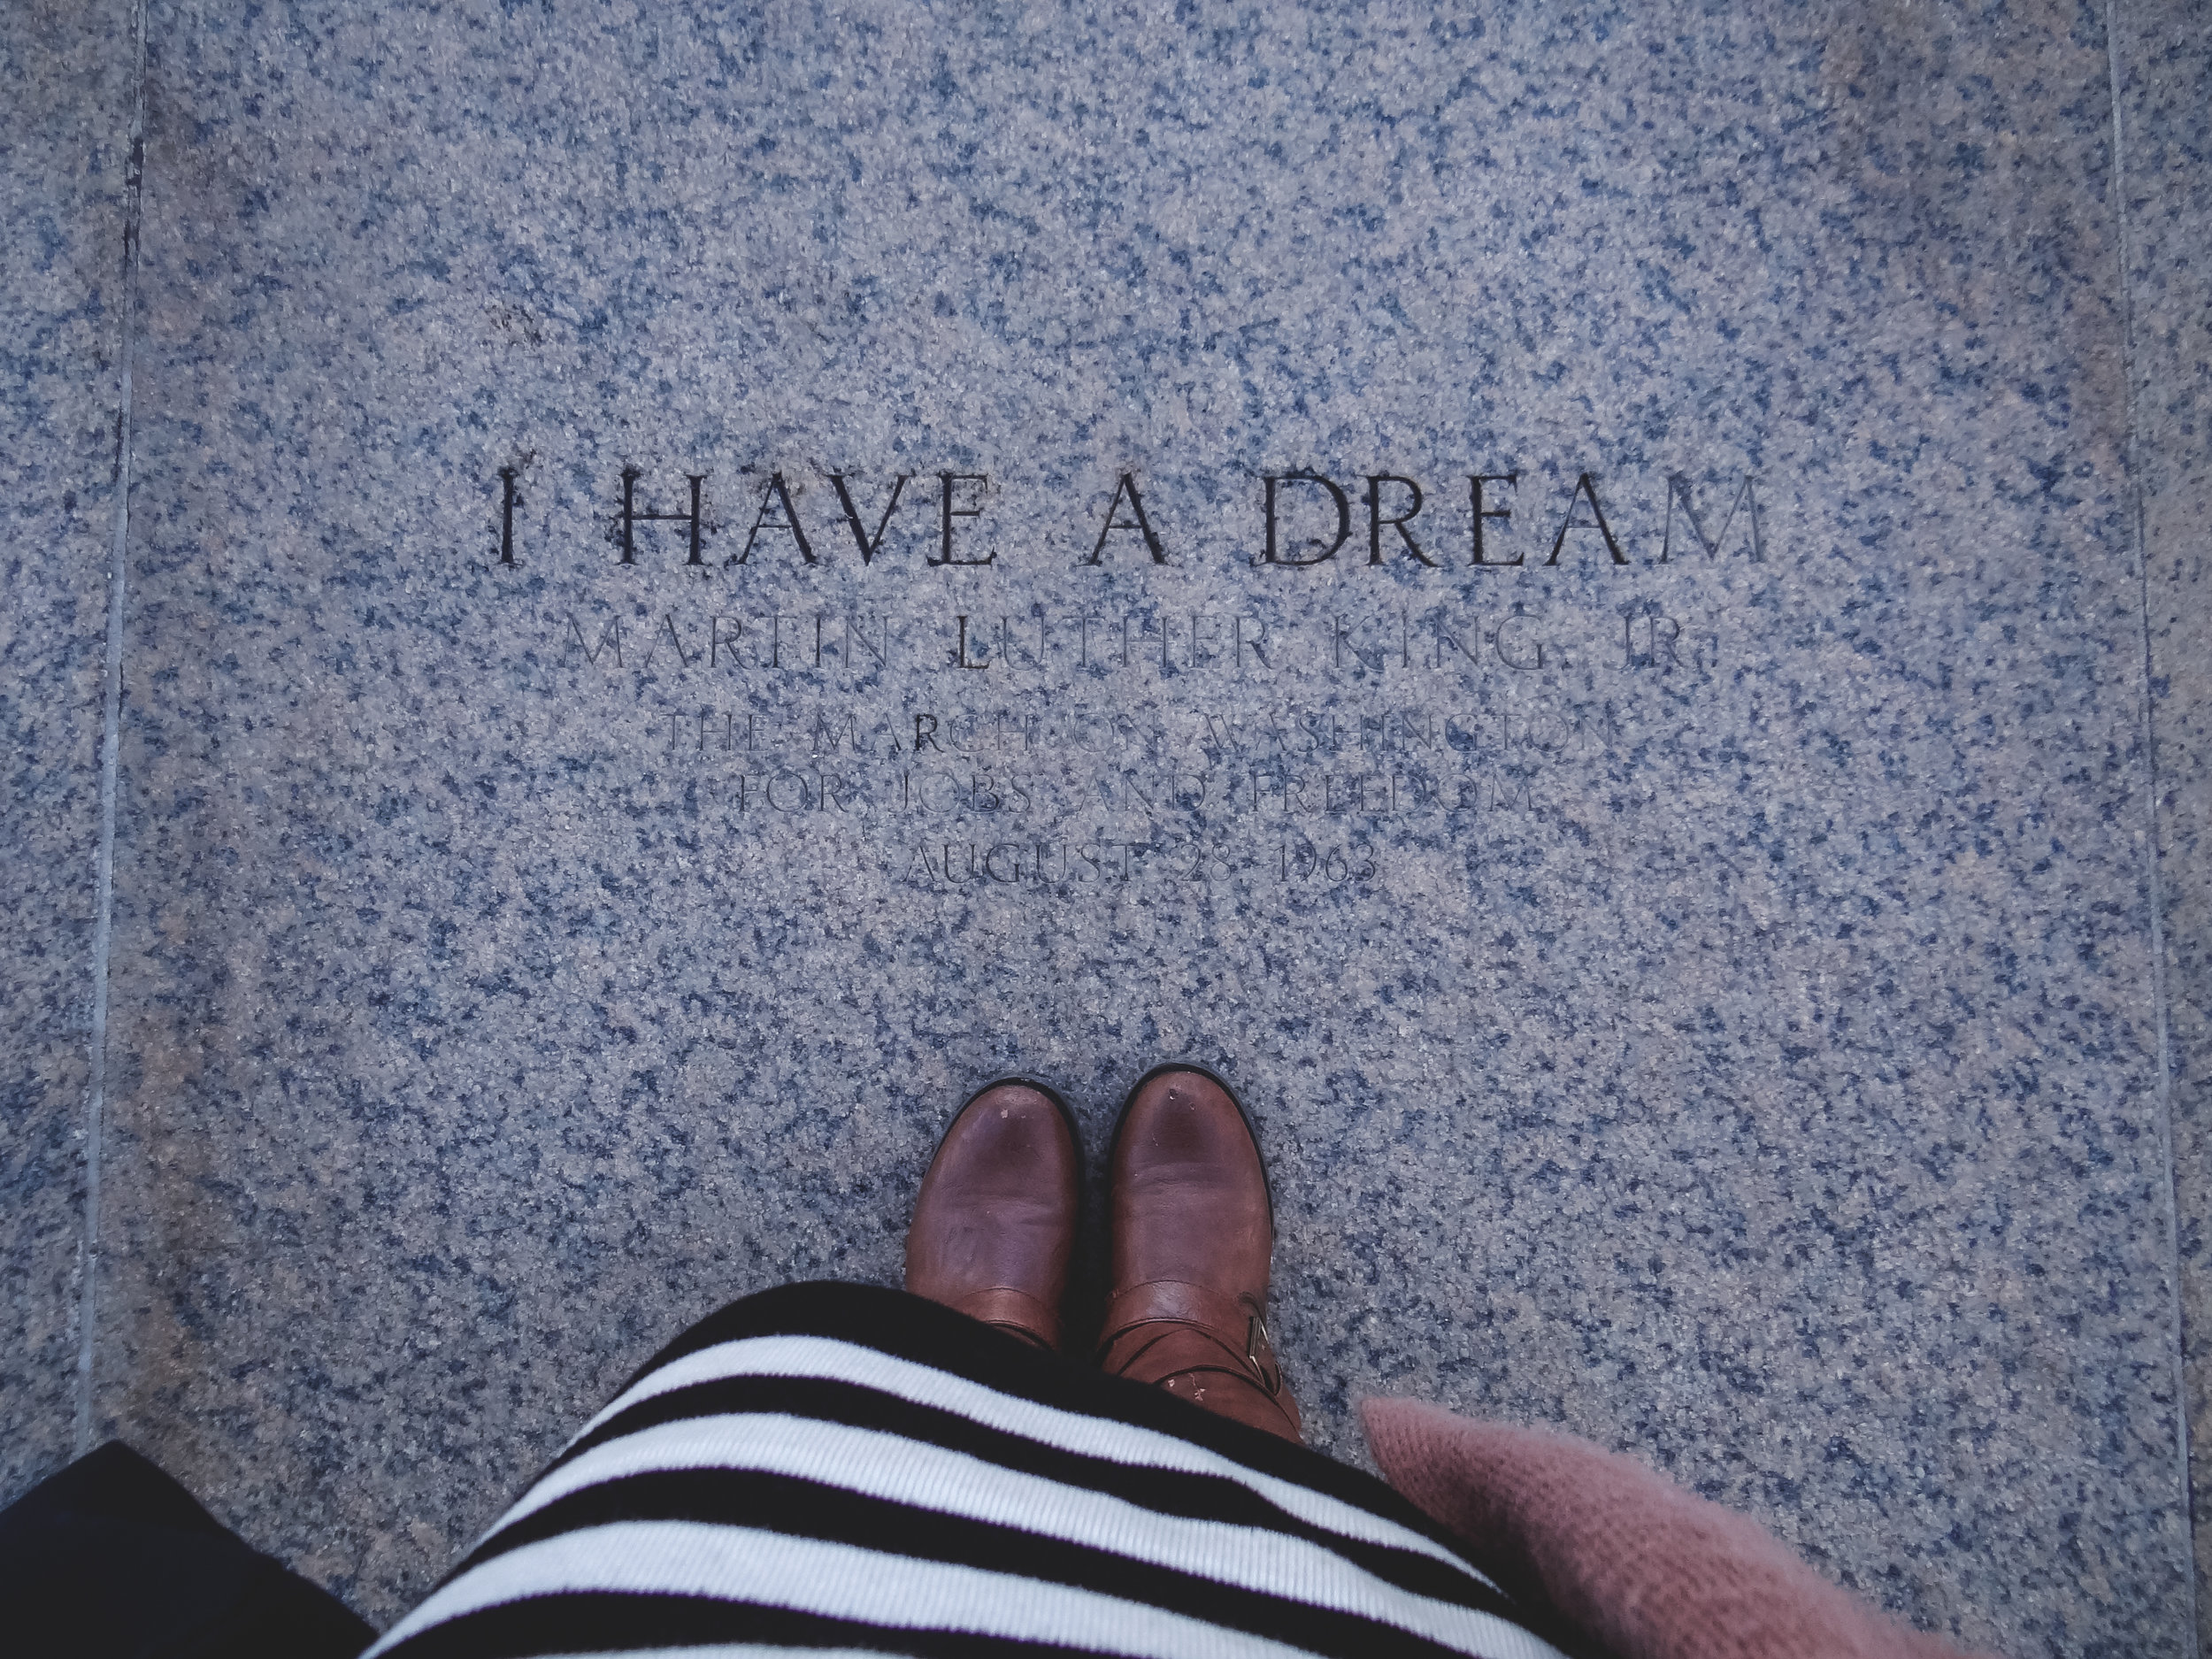 I have a dream, lincoln memorial on the steps